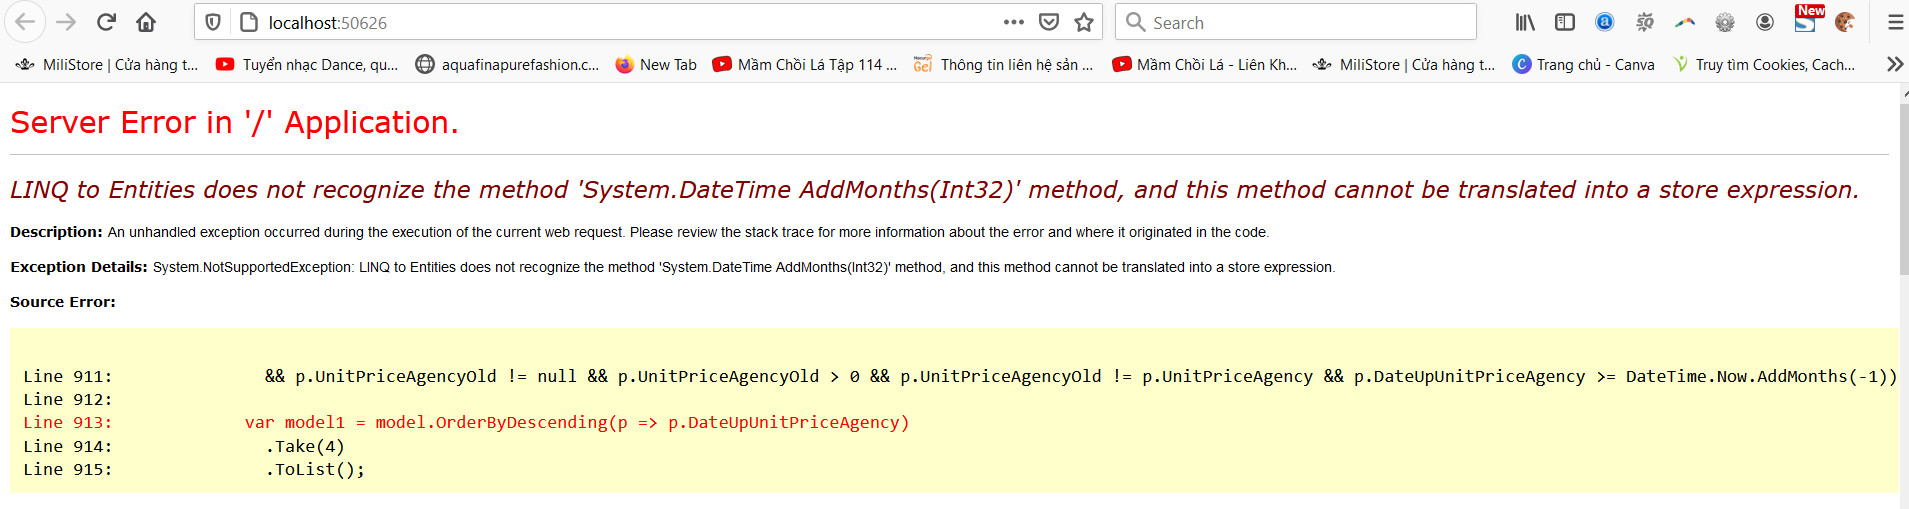 linq-to-entities-does-not-recognize-the-method-addmonths.jpg